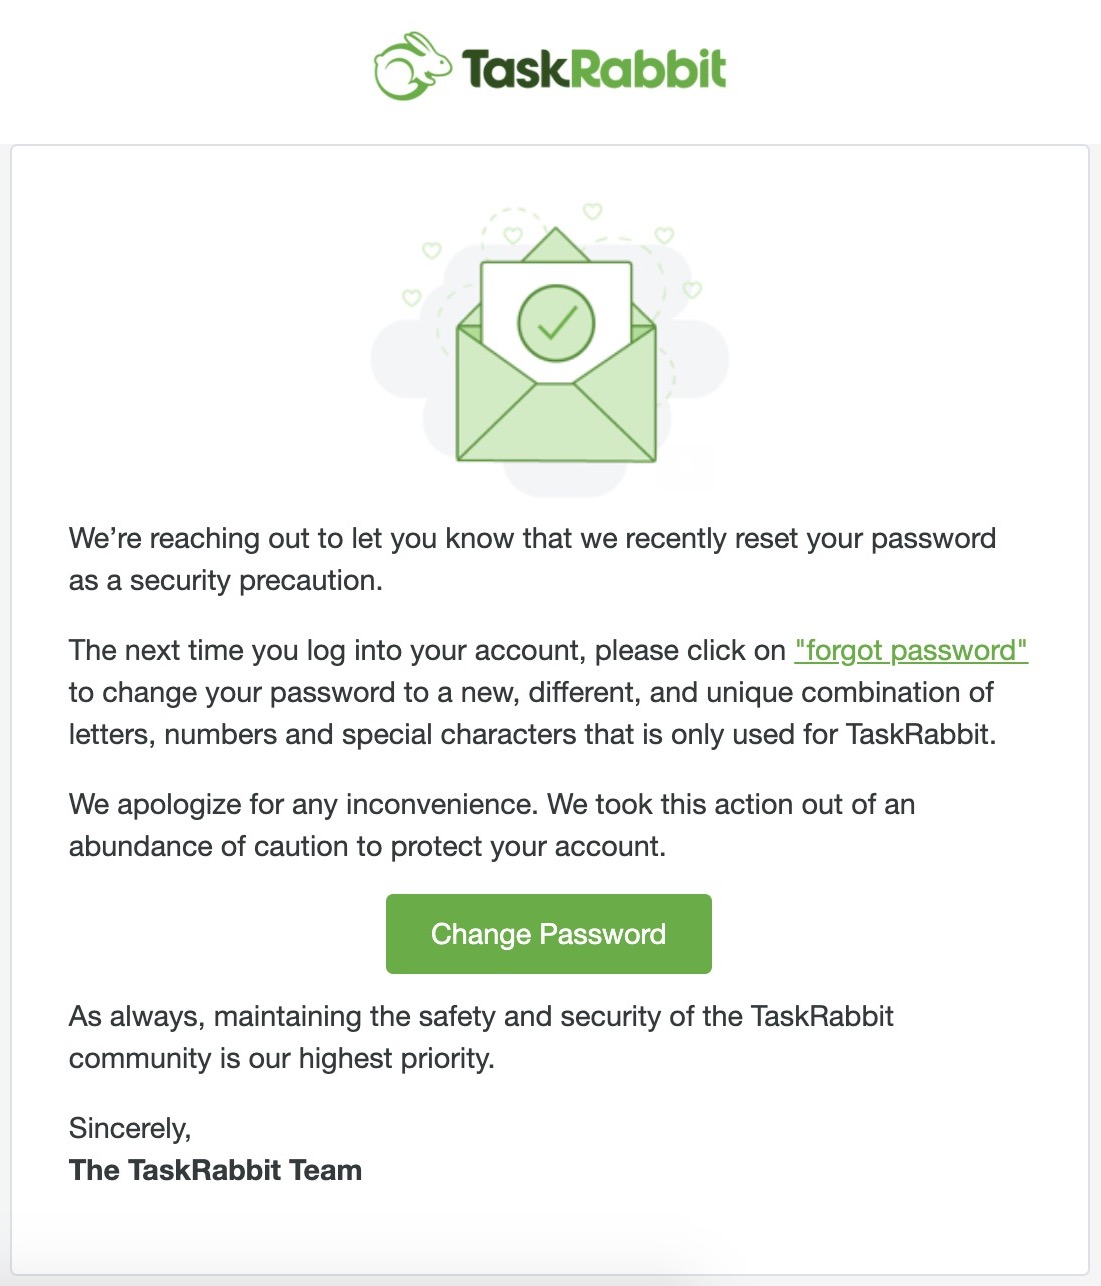 TaskRabbit is resetting customer passwords after finding 'suspicious activity' on its network